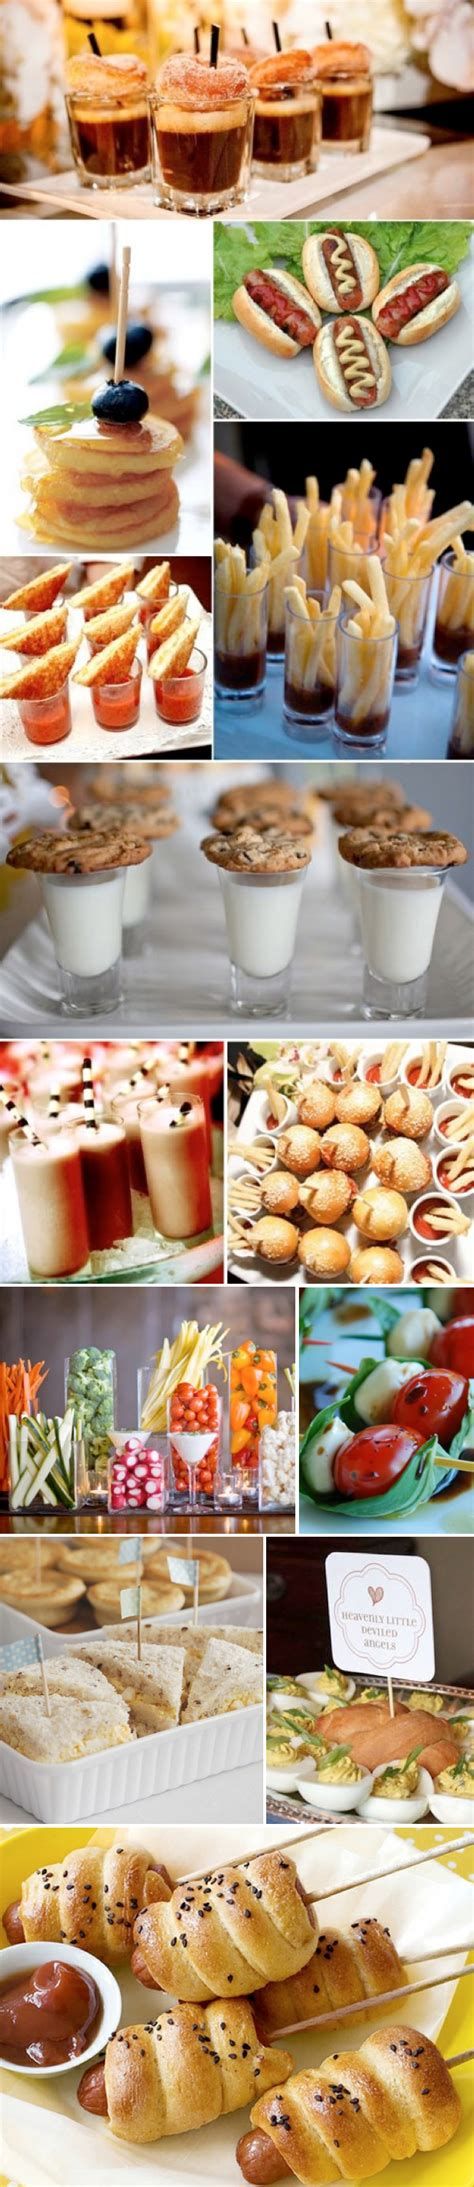 buffet photos and ideas wedding buffet menu ideas